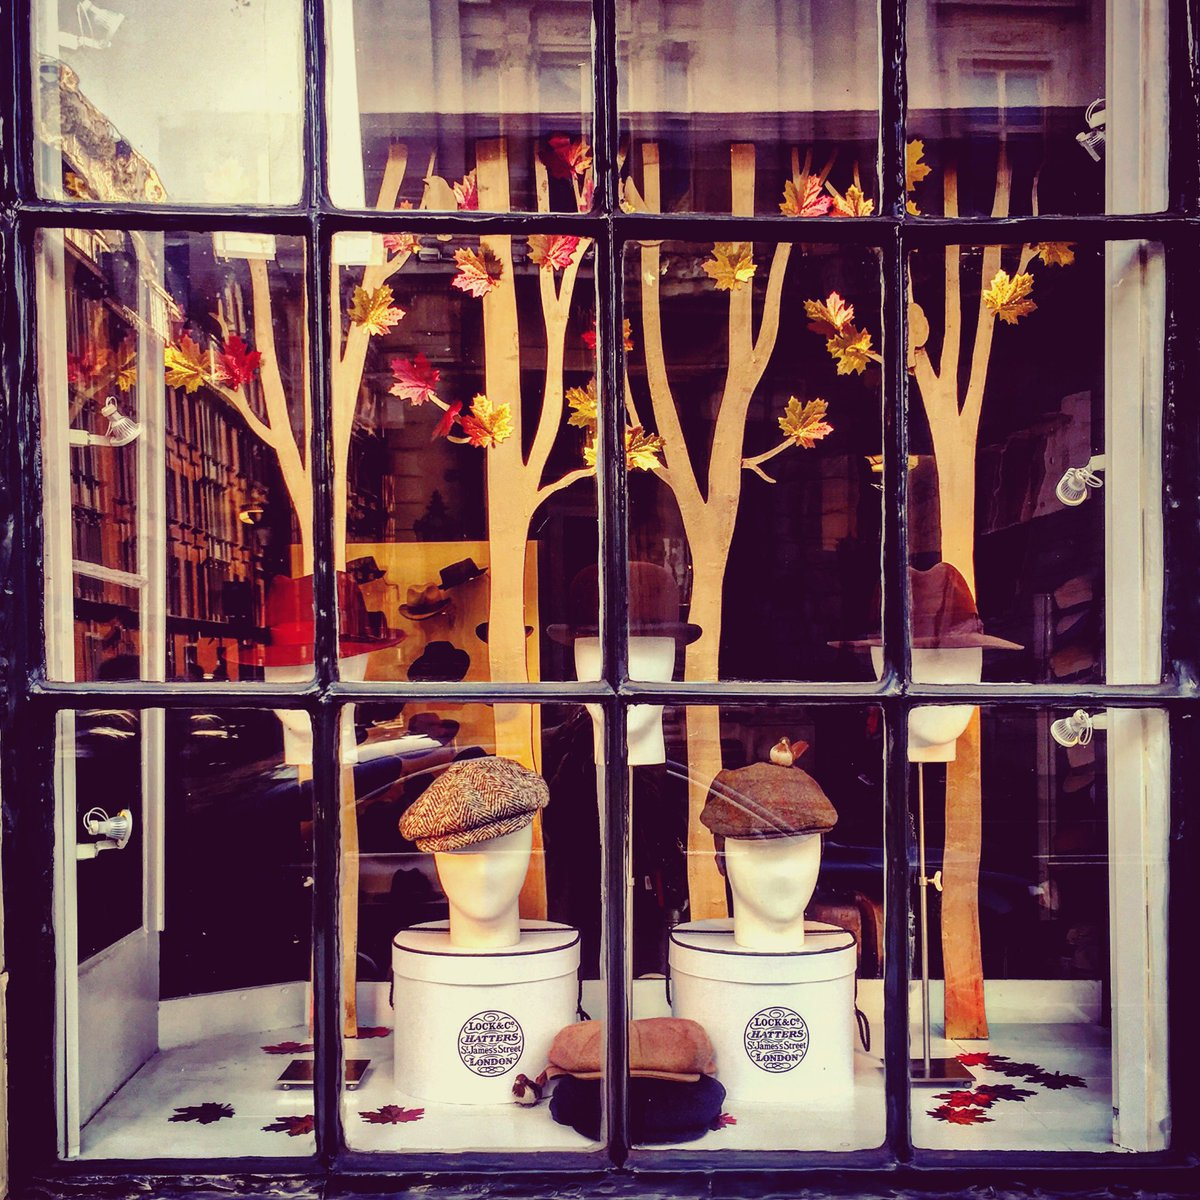 Lock and Co. is the oldest hat shop in the world and one of the oldest family-owned businesses. It's in a Grade II listed building on St James's Street, and is responsible for inventing the bowler hat! @LockandCo #autumnstyle #londonphotographypic.twitter.com/wK50kcGI8w